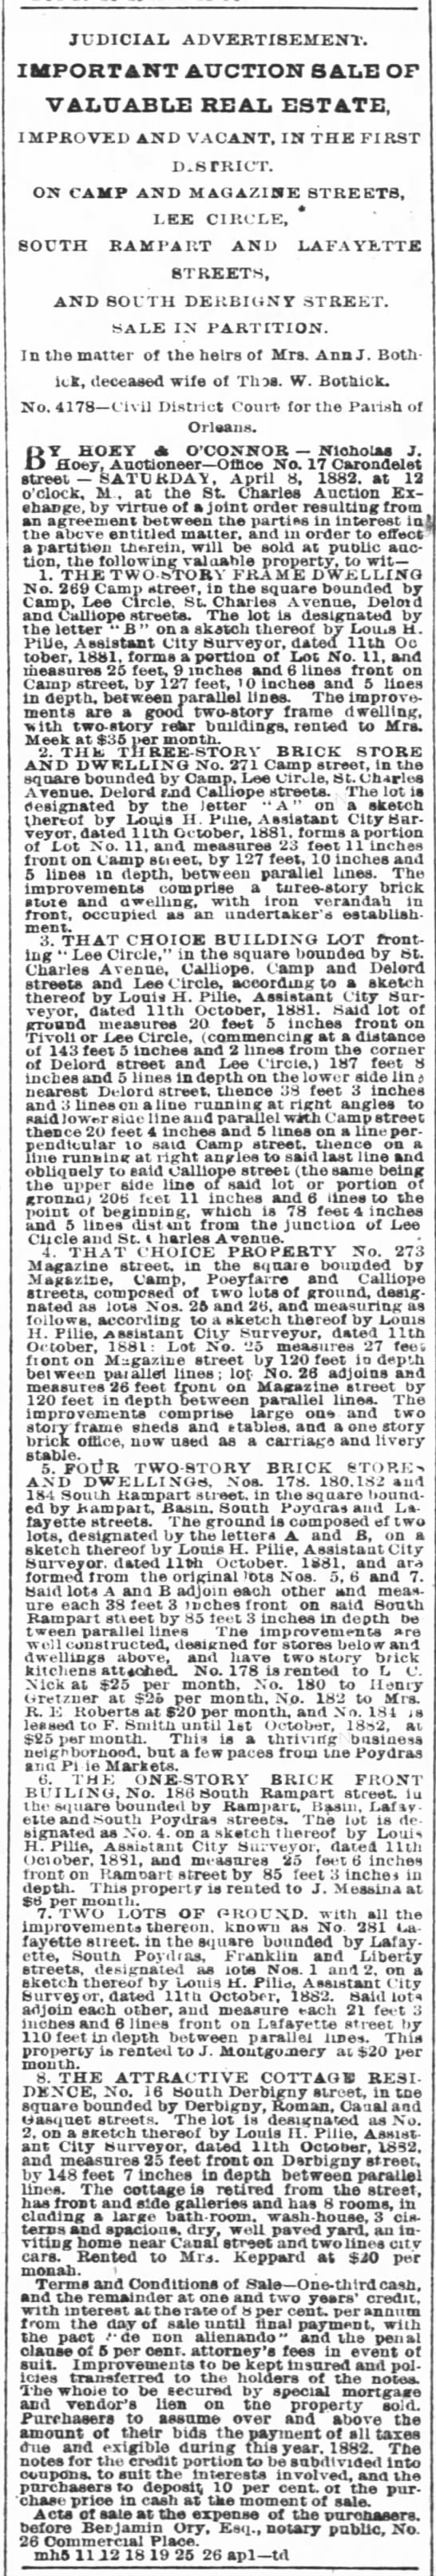 Louis H Pilié , Assistant City Surveyor Times Picayune 18 Mar 1882, Sat 1st Edition, pg 8 -